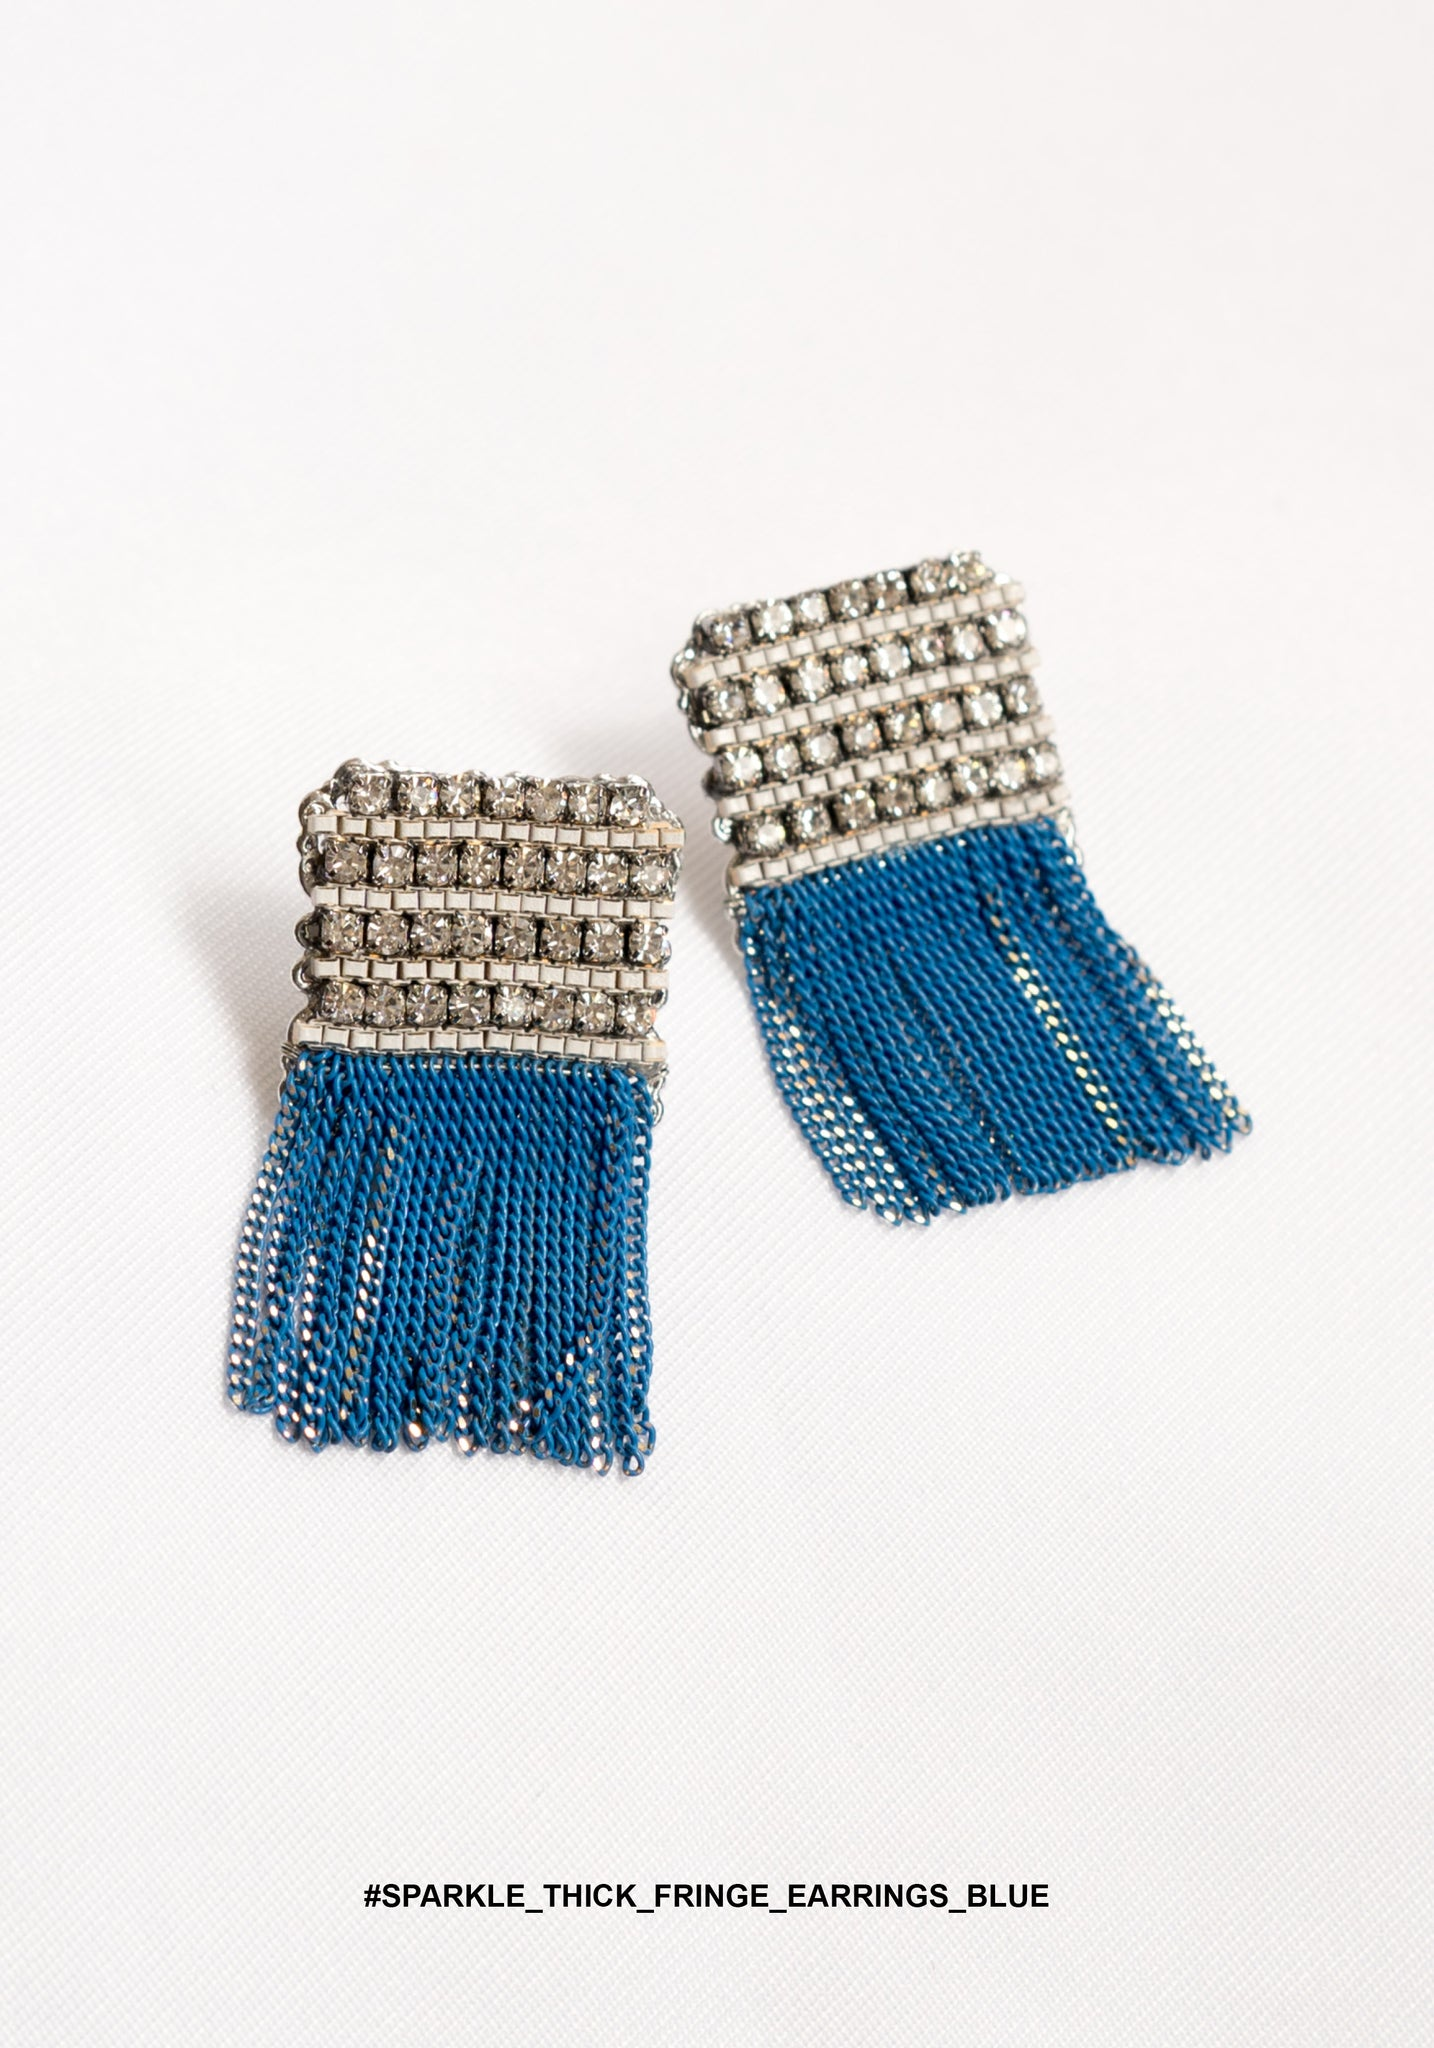 Sparkle Thick Fringe Earrings Blue - whoami